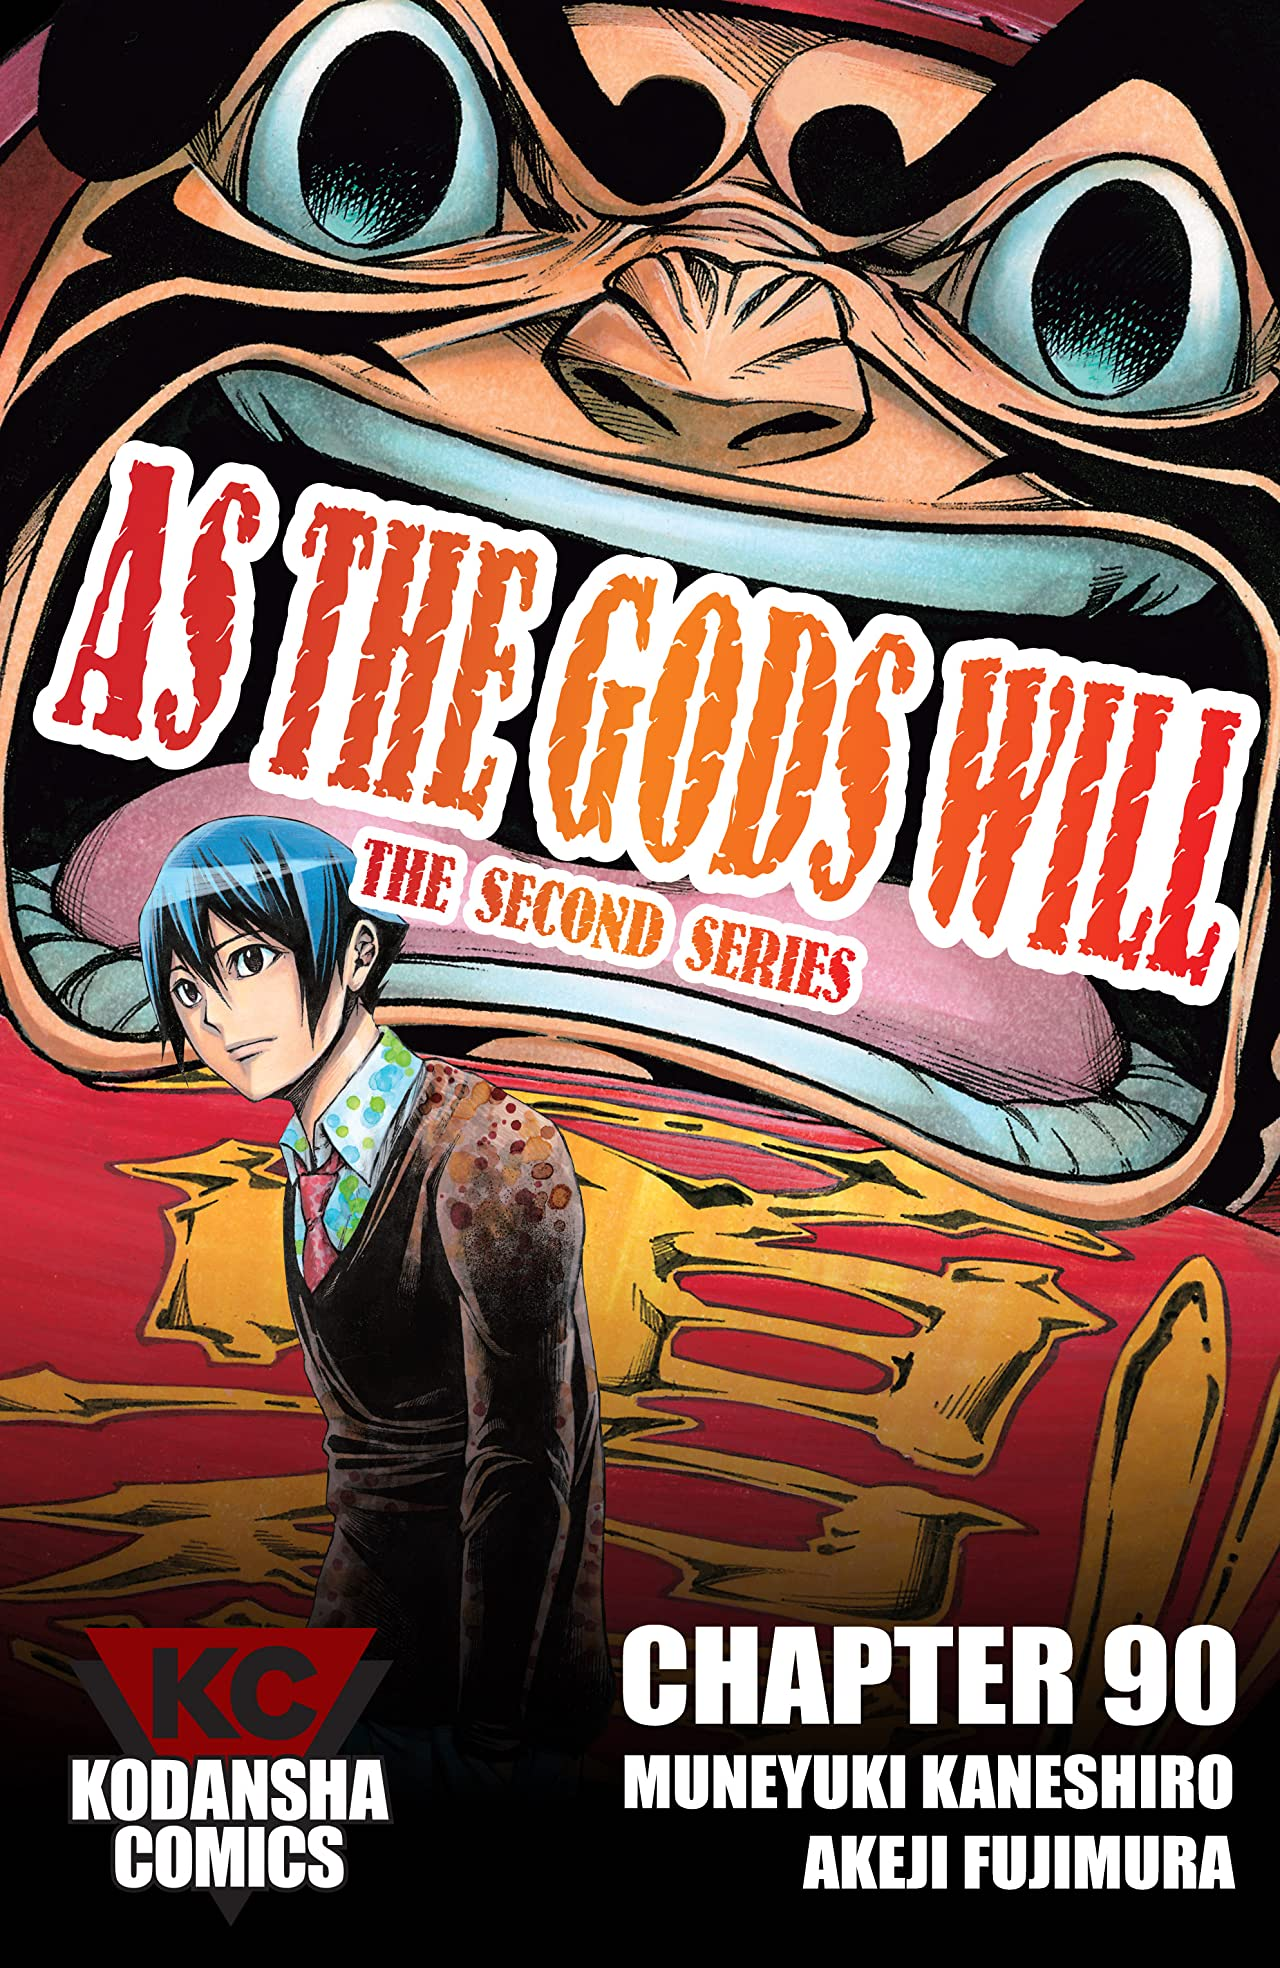 As The Gods Will: The Second Series #90